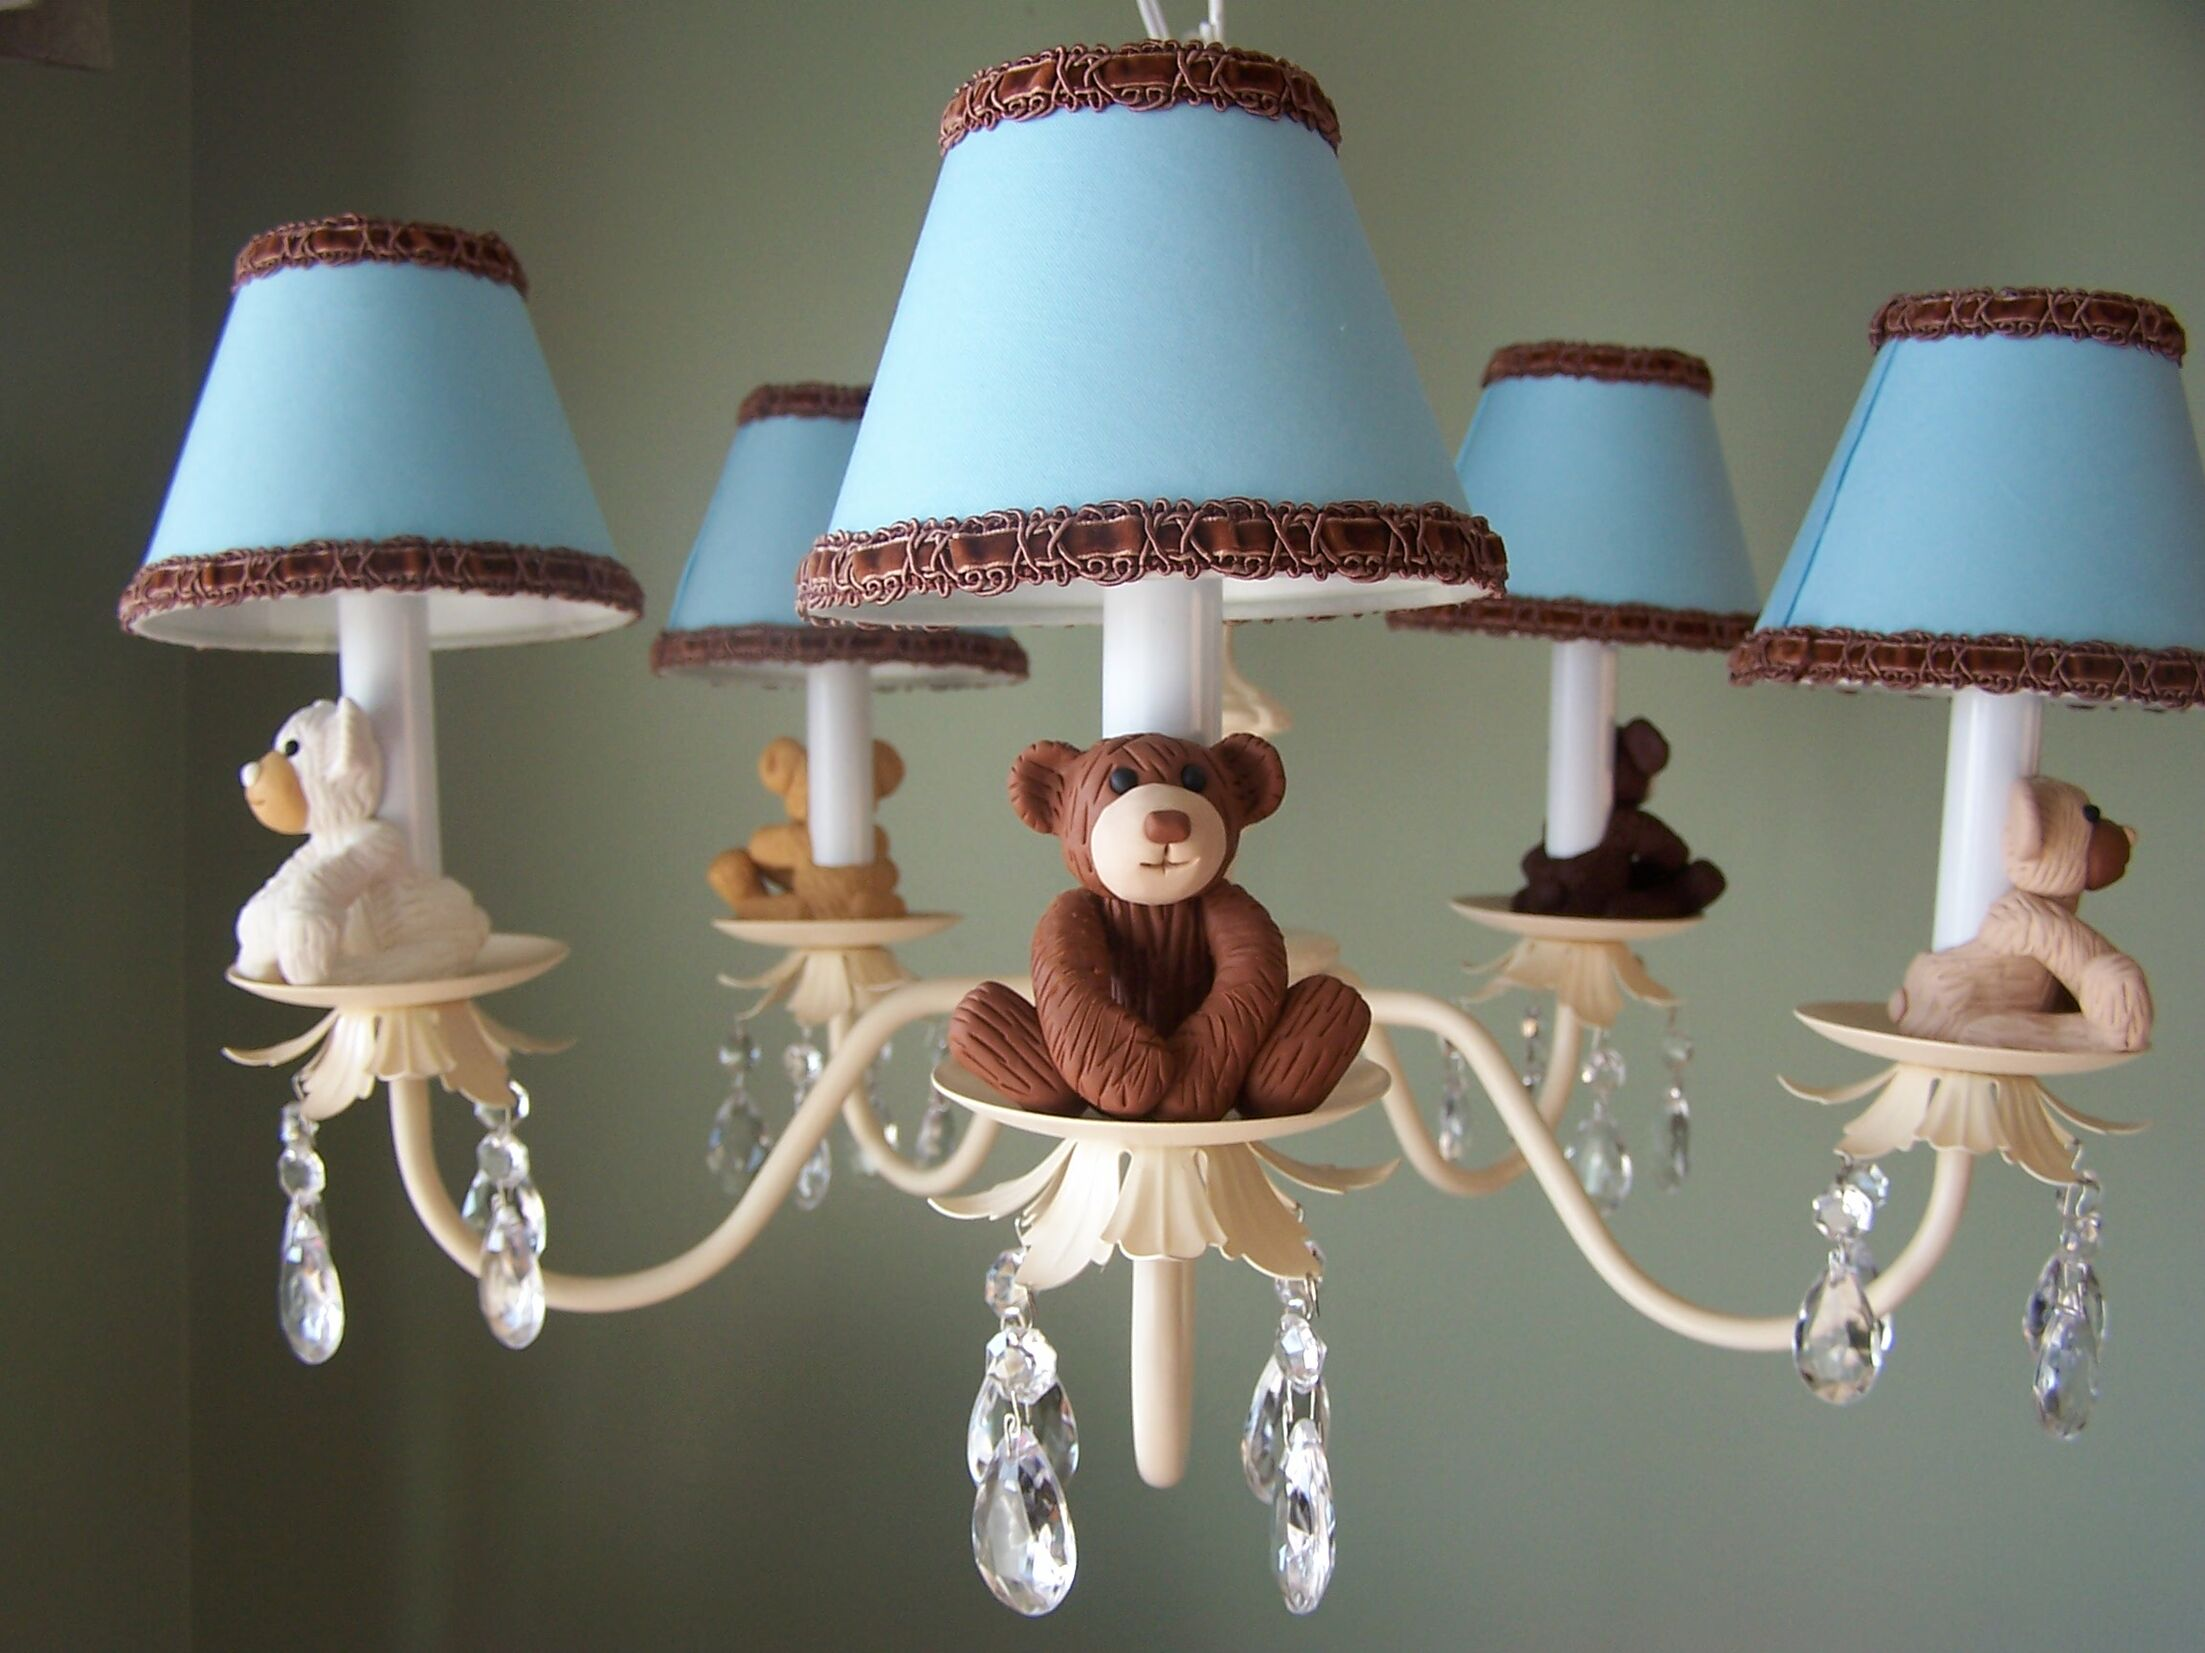 Teddy Time 5-Light Shaded Chandelier Shade: Striped Clamshell